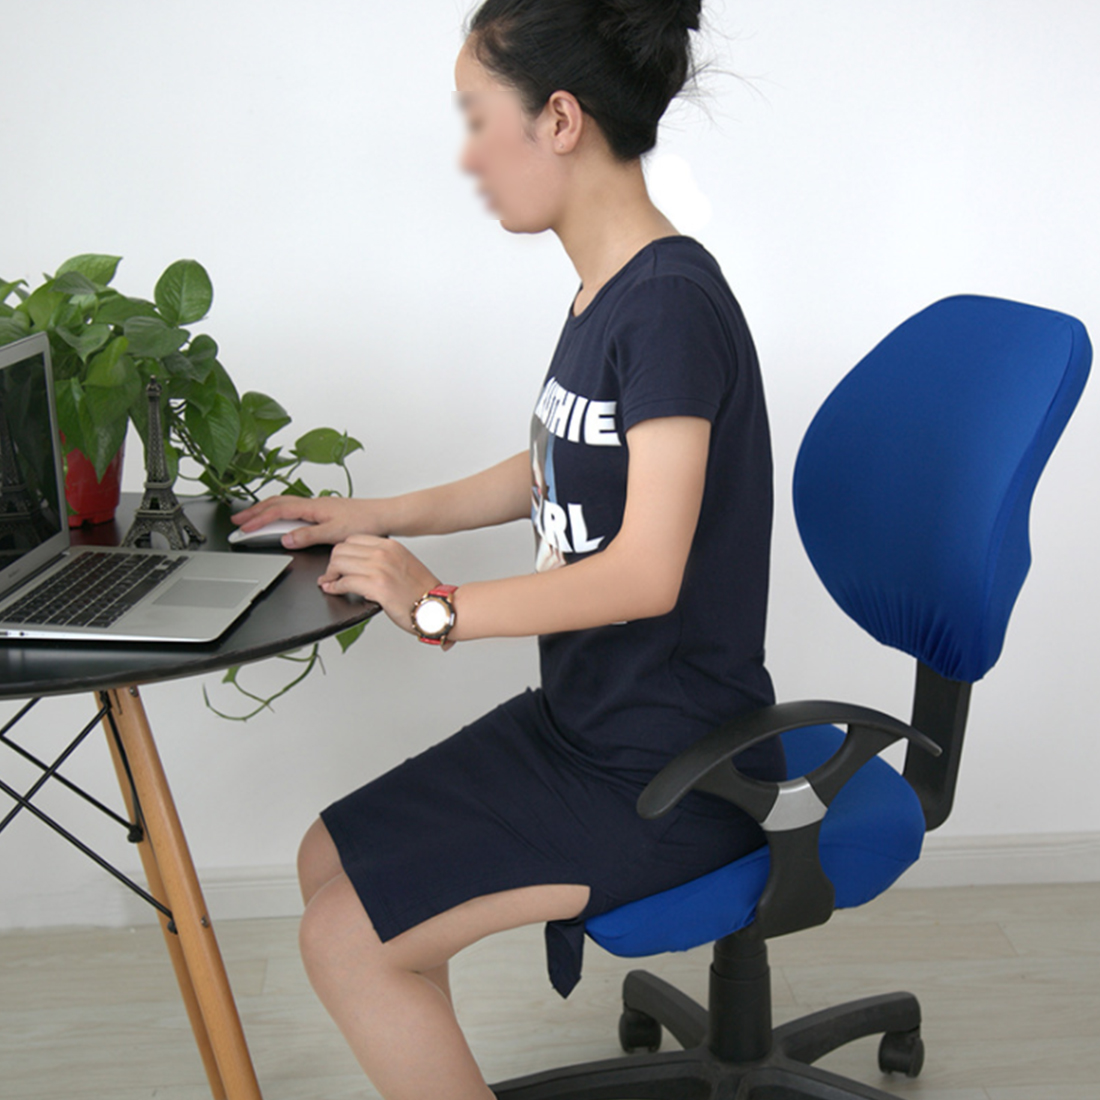 Elastic Chair Covers Made with Polyester Material For Office and Computer Chair in Universal Size 10